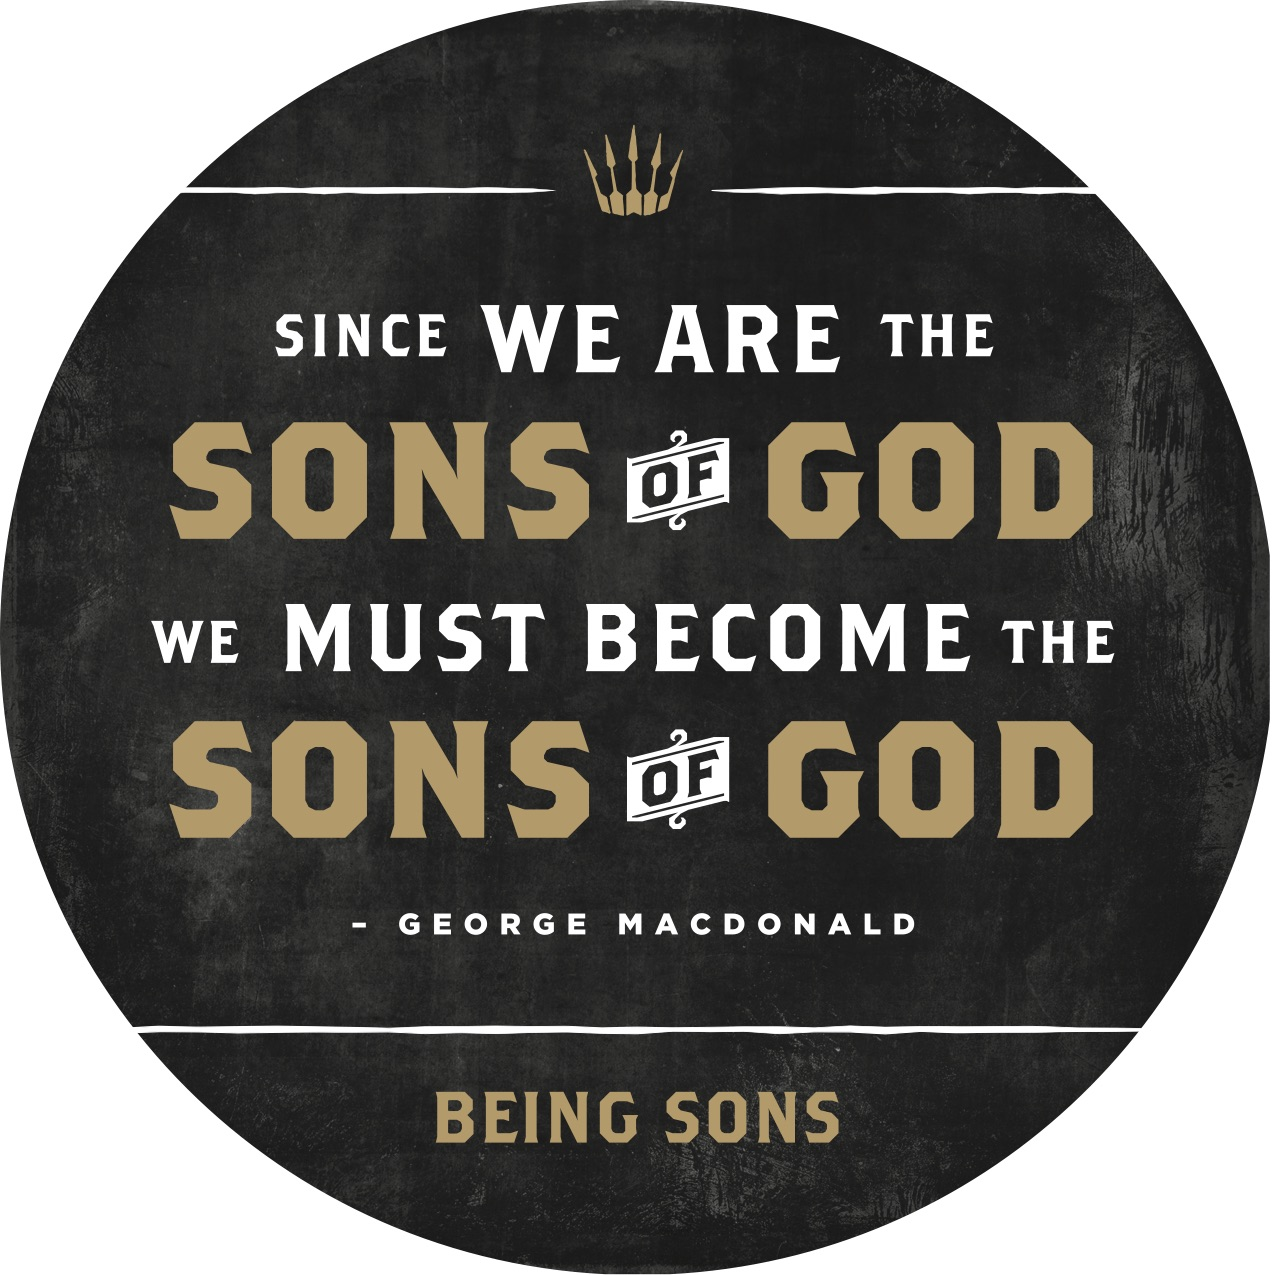 BS-SonsOfGod-Sticker-1.0-PressReady (2).jpg